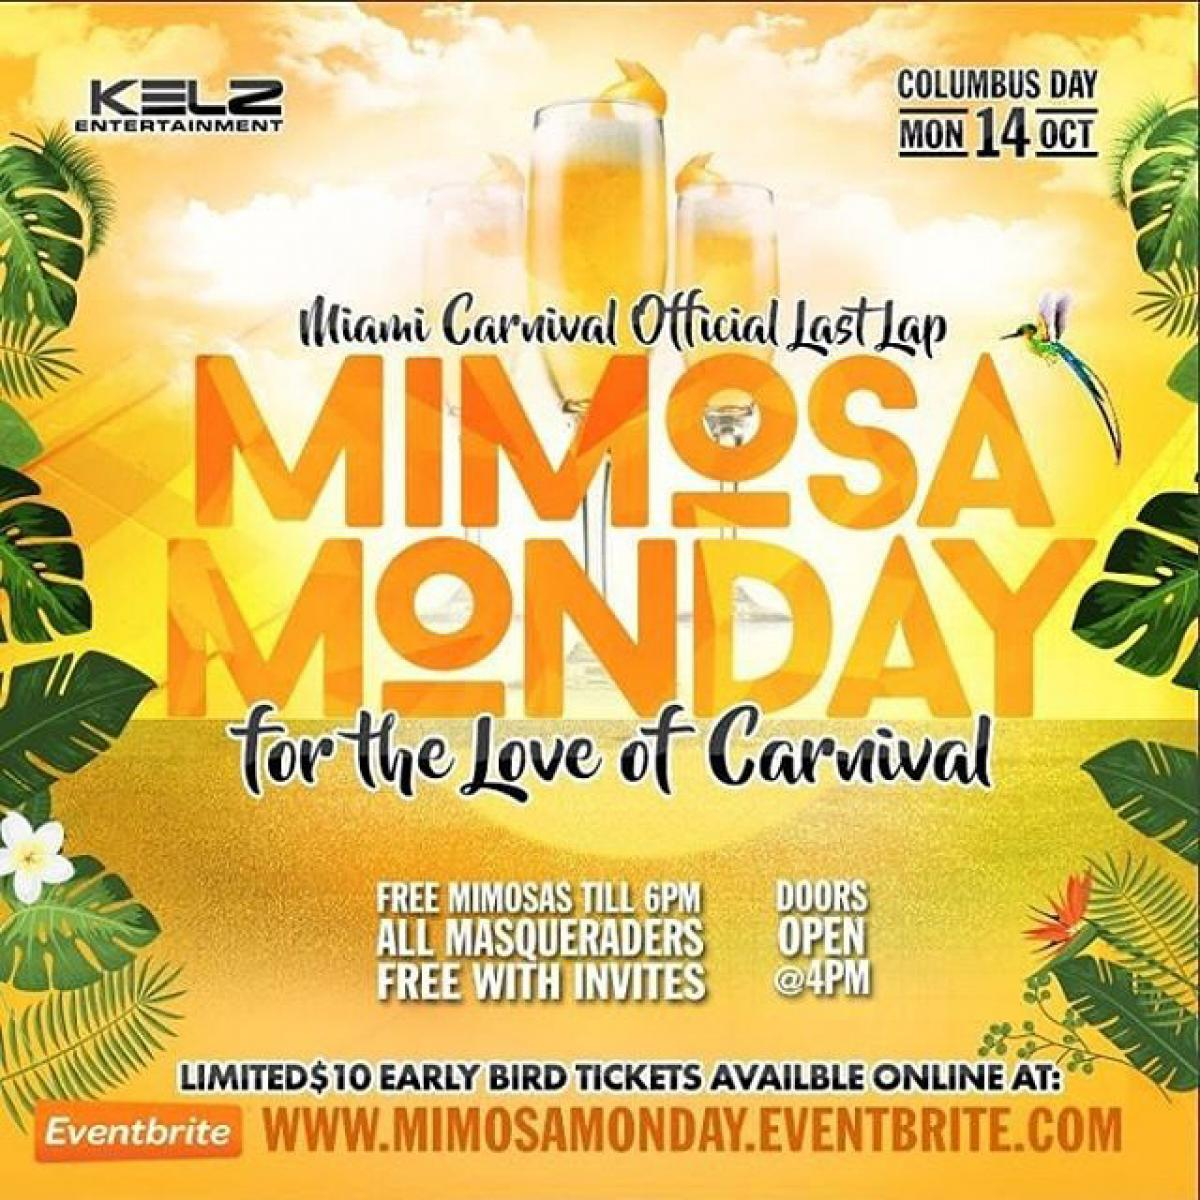 Mimosa Monday flyer or graphic.